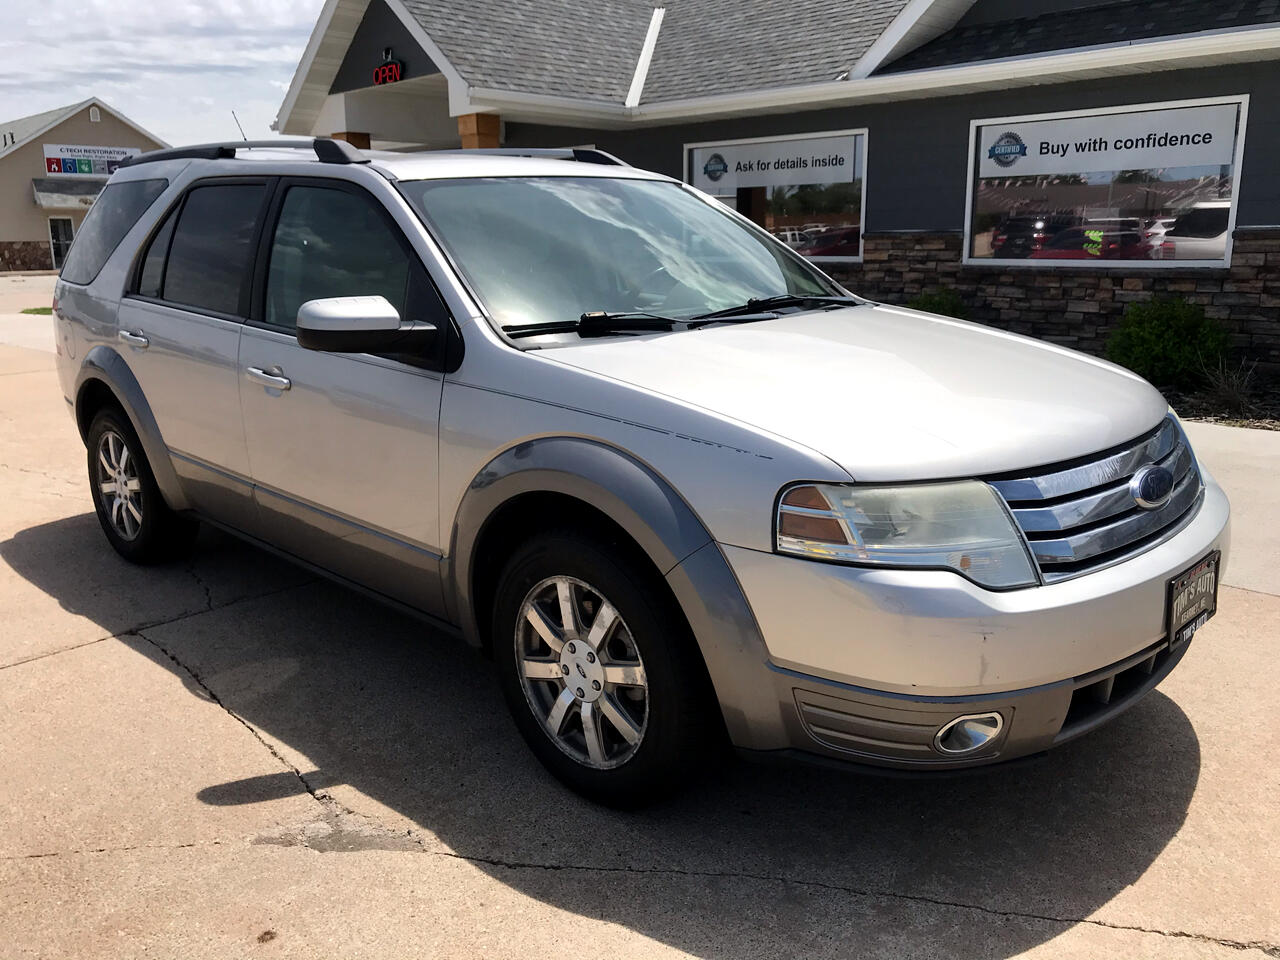 Ford Taurus X 4dr Wgn SEL FWD 2008